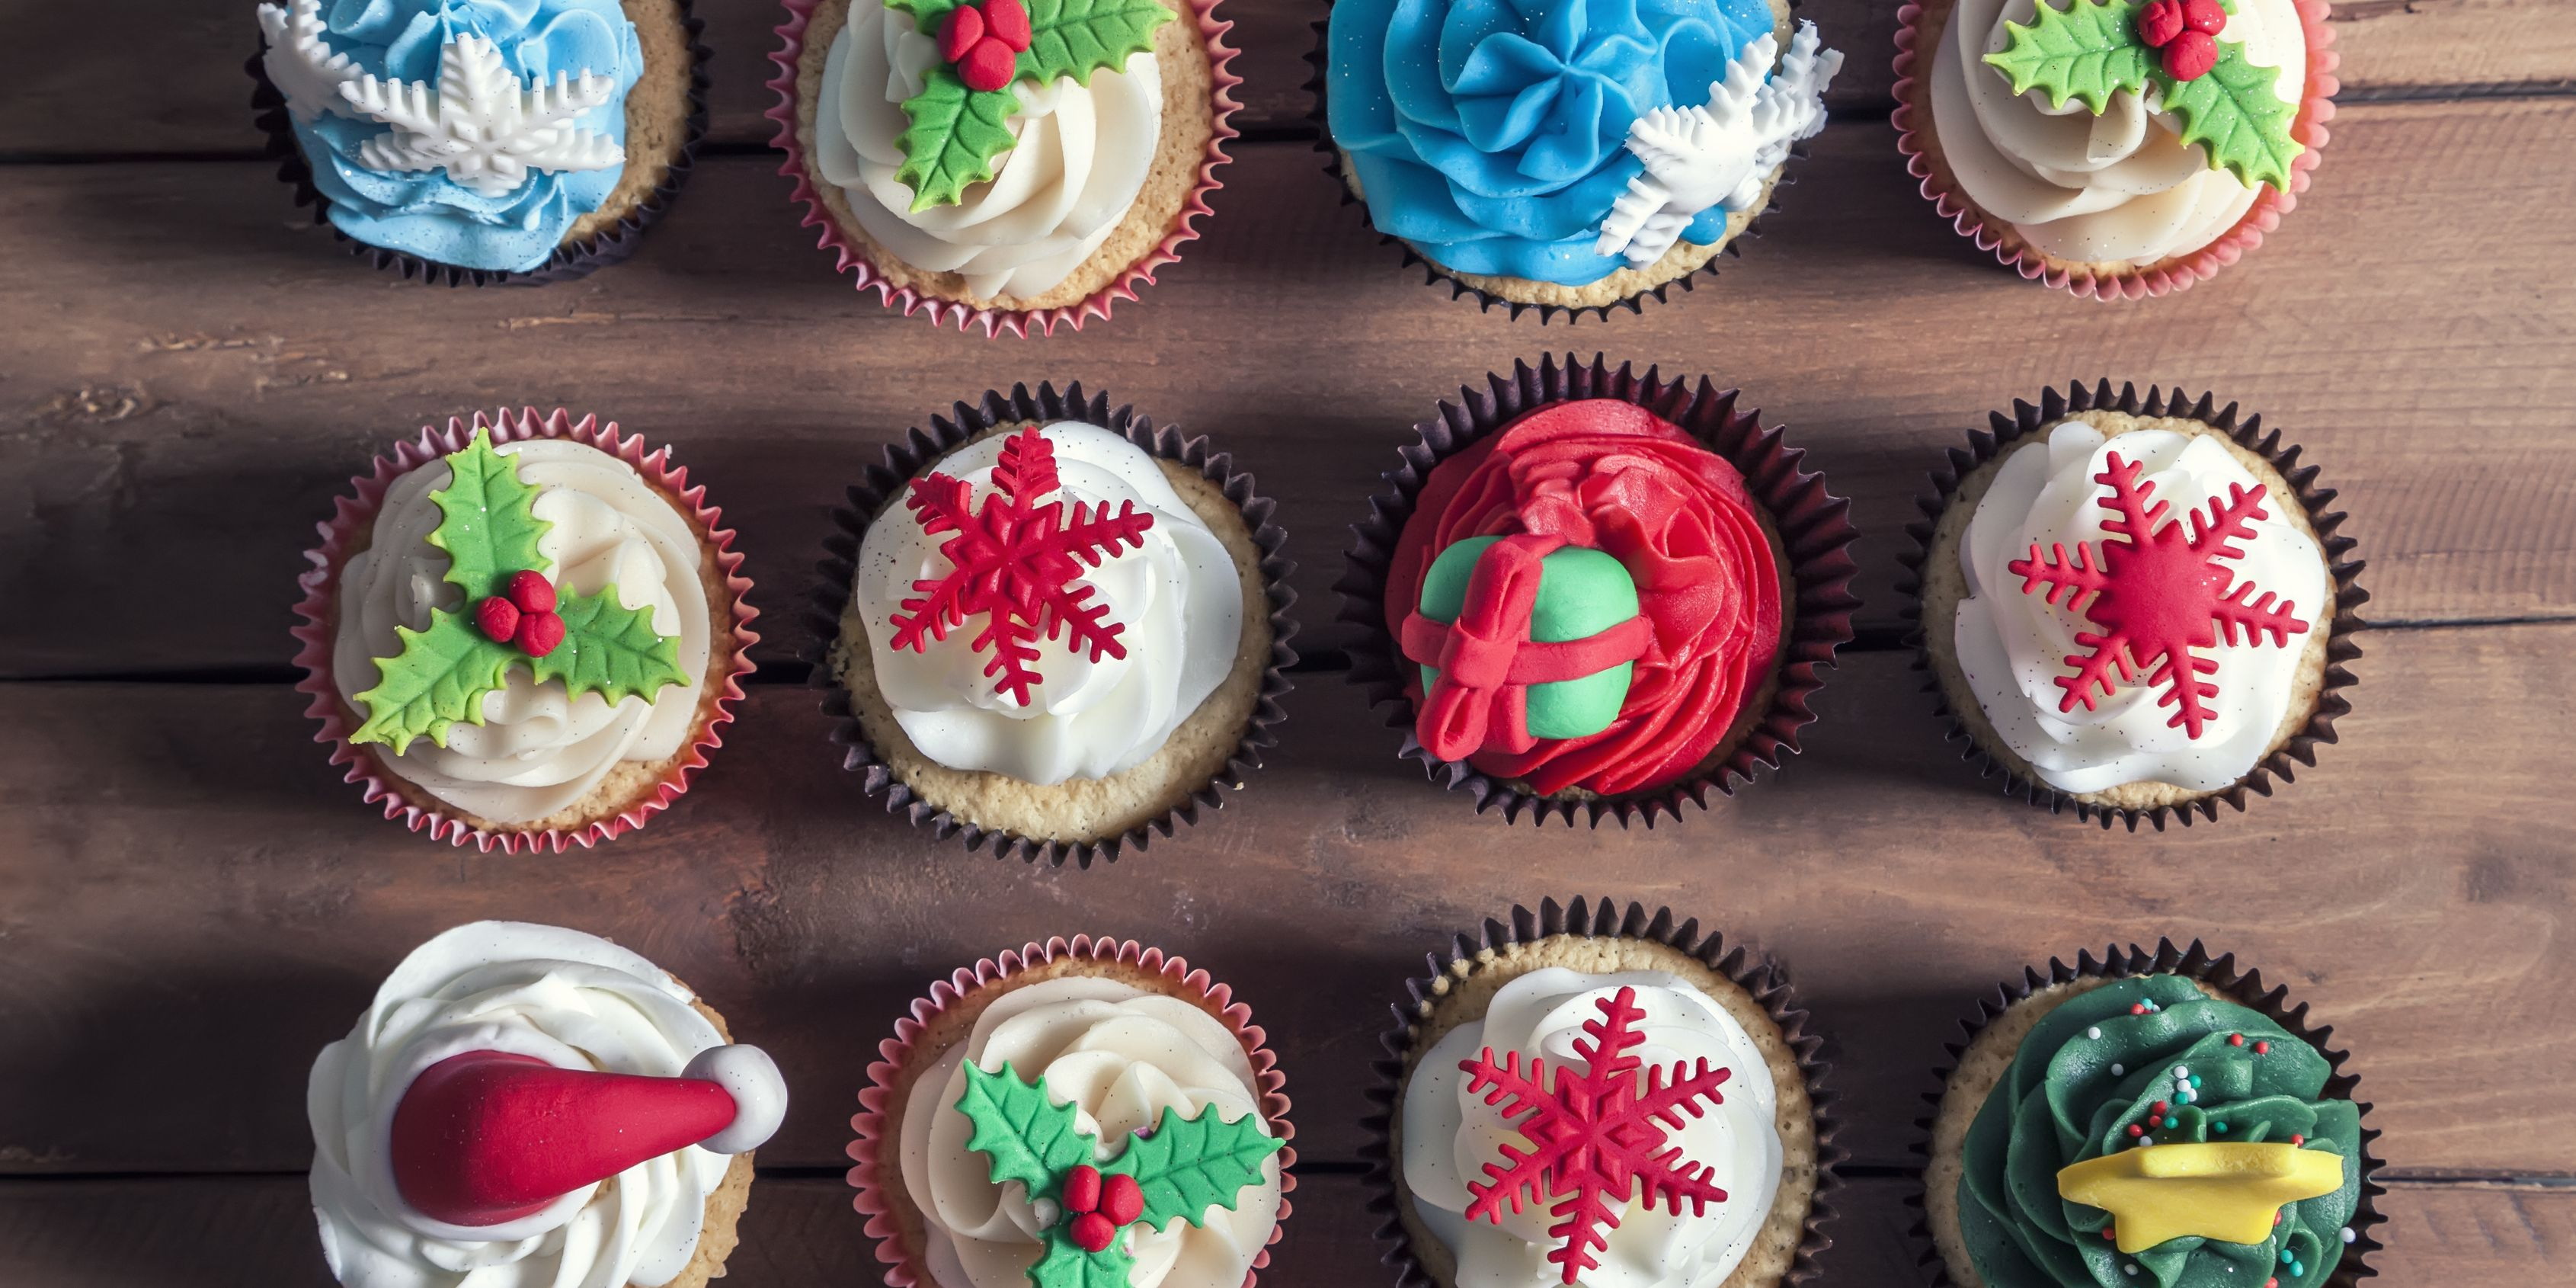 This Week We're Grateful for Chrissy Teigen's Dad and National Cupcake Day